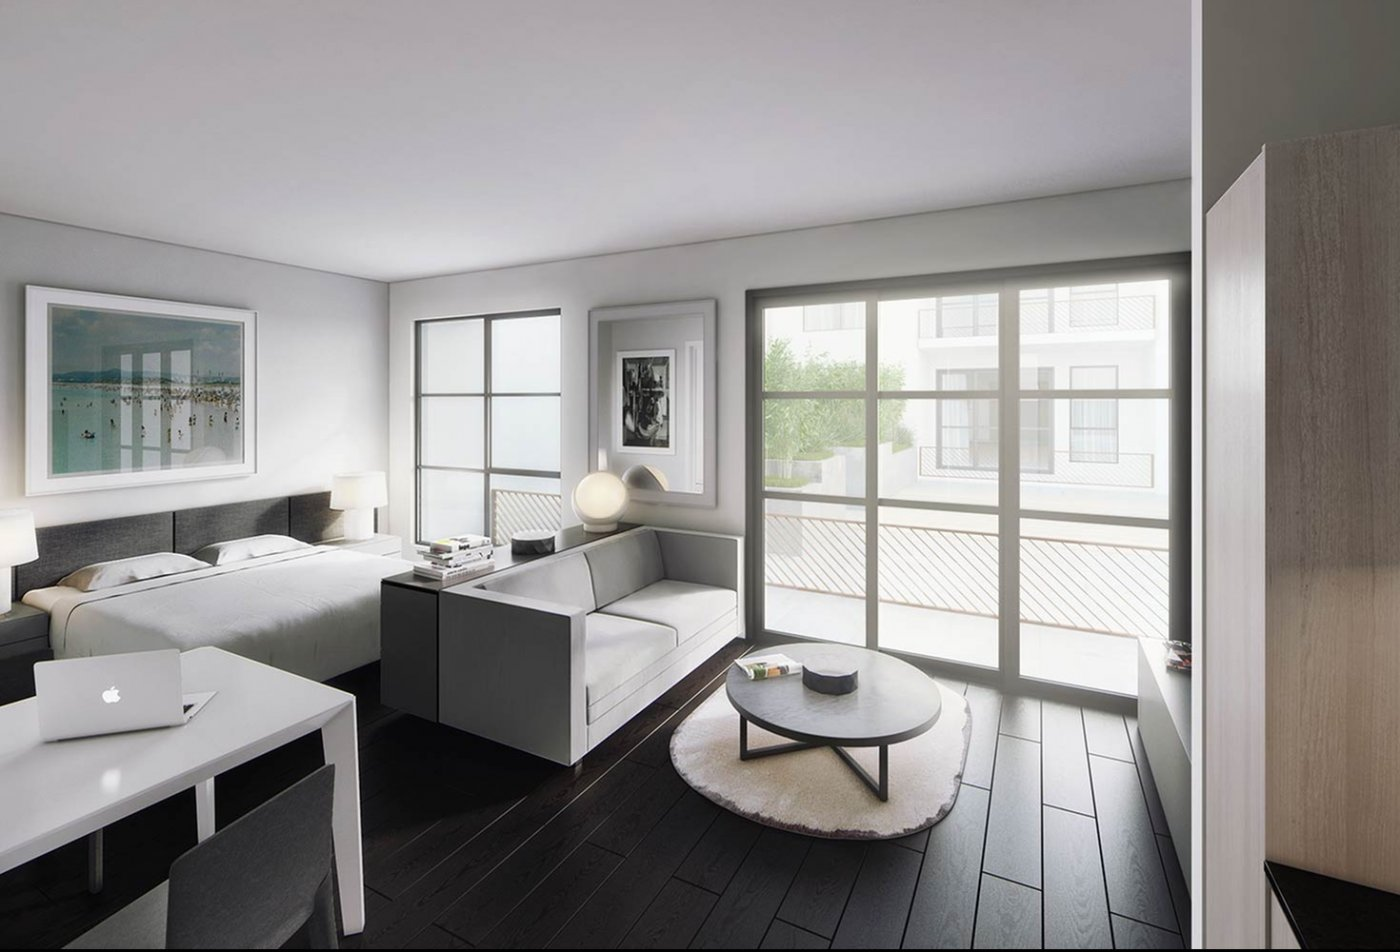 Spacious Master Bedroom   Apartments Homes for rent in Hollywood, CA   5800 Harold